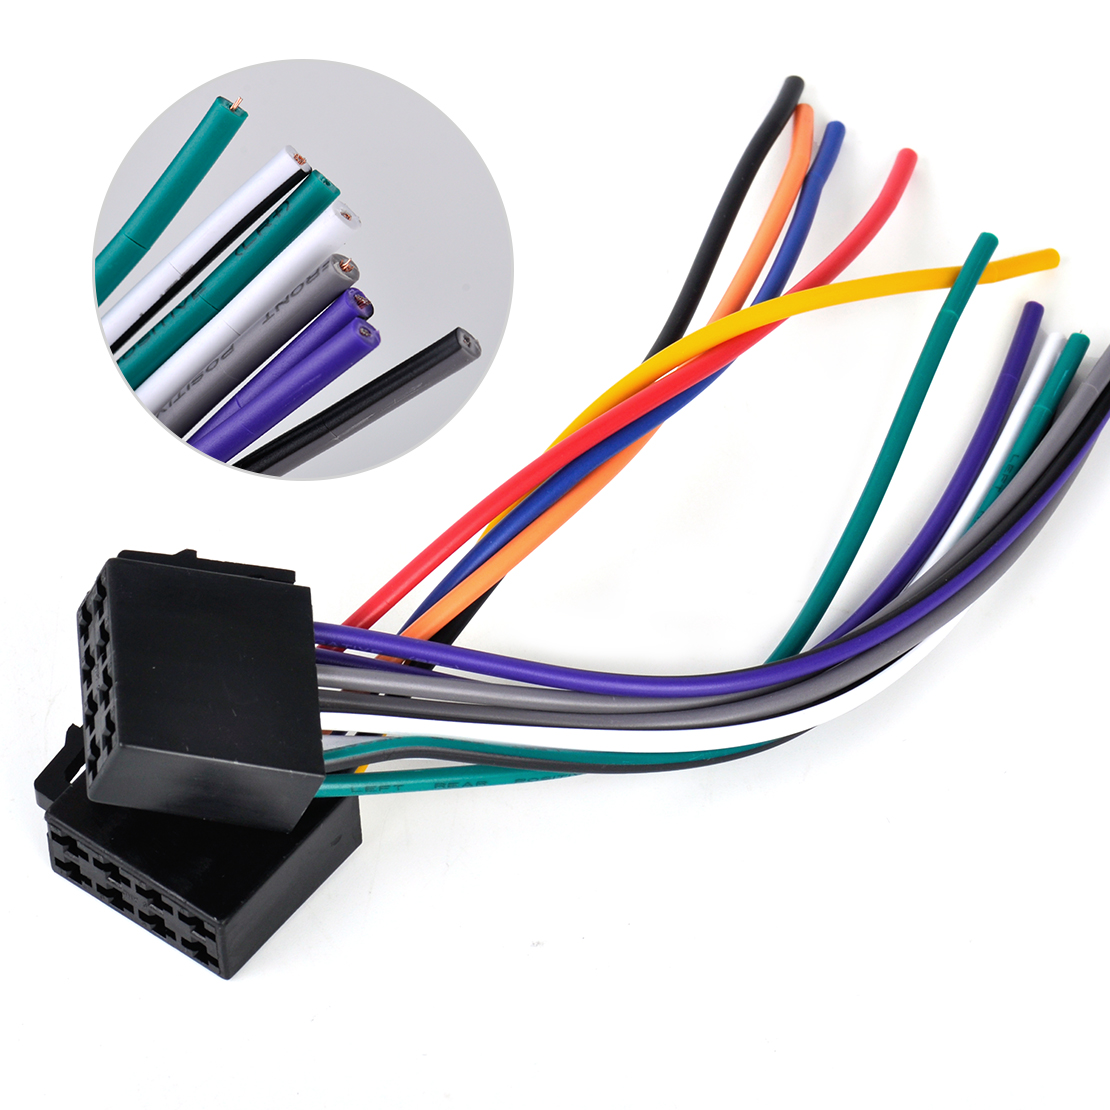 1 universal car stereo radio female iso plug adapter wiring harness universal wiring harness connector at gsmportal.co